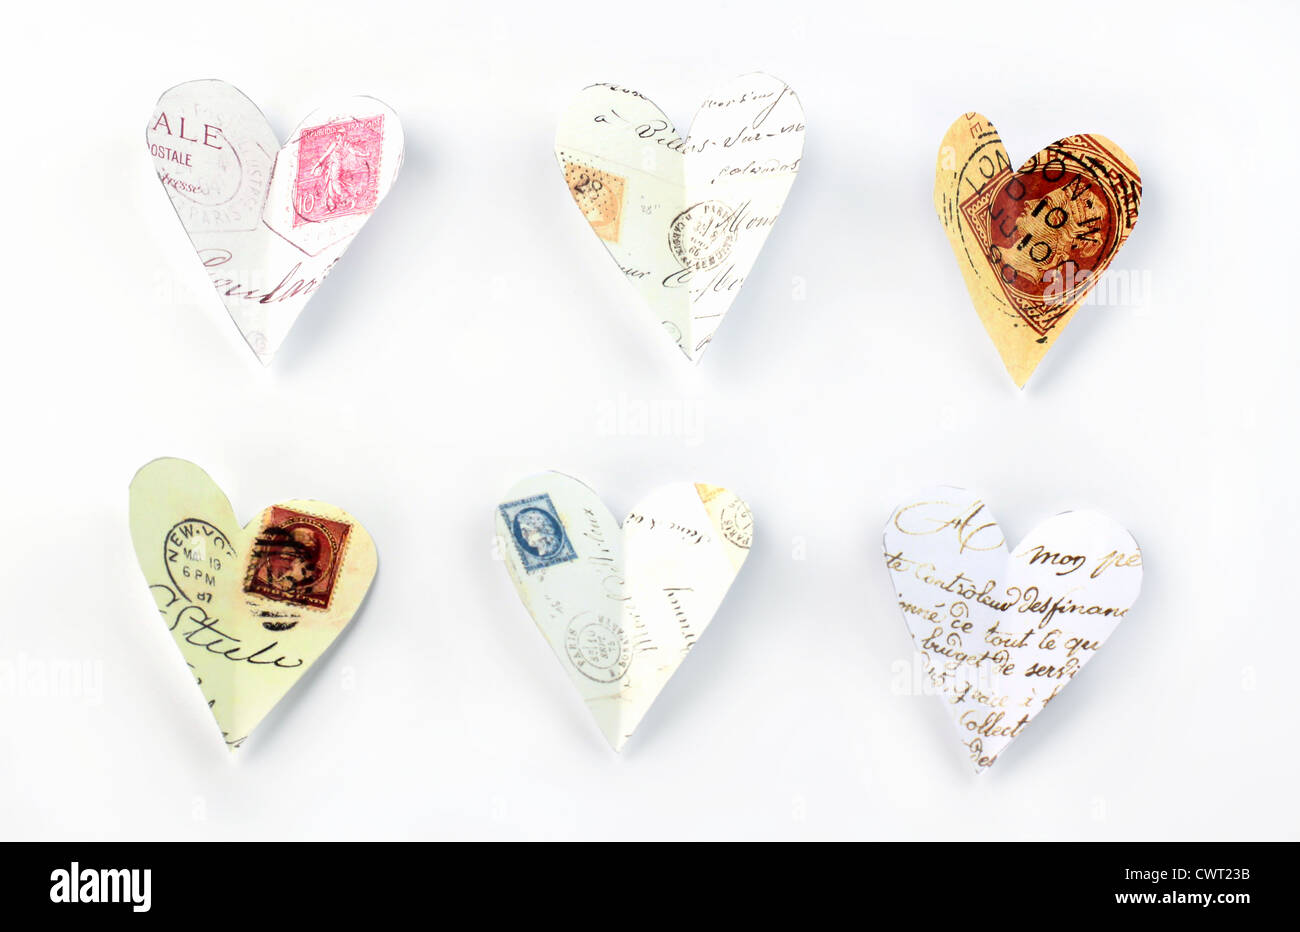 Flying love letters cut out of old letters - Stock Image